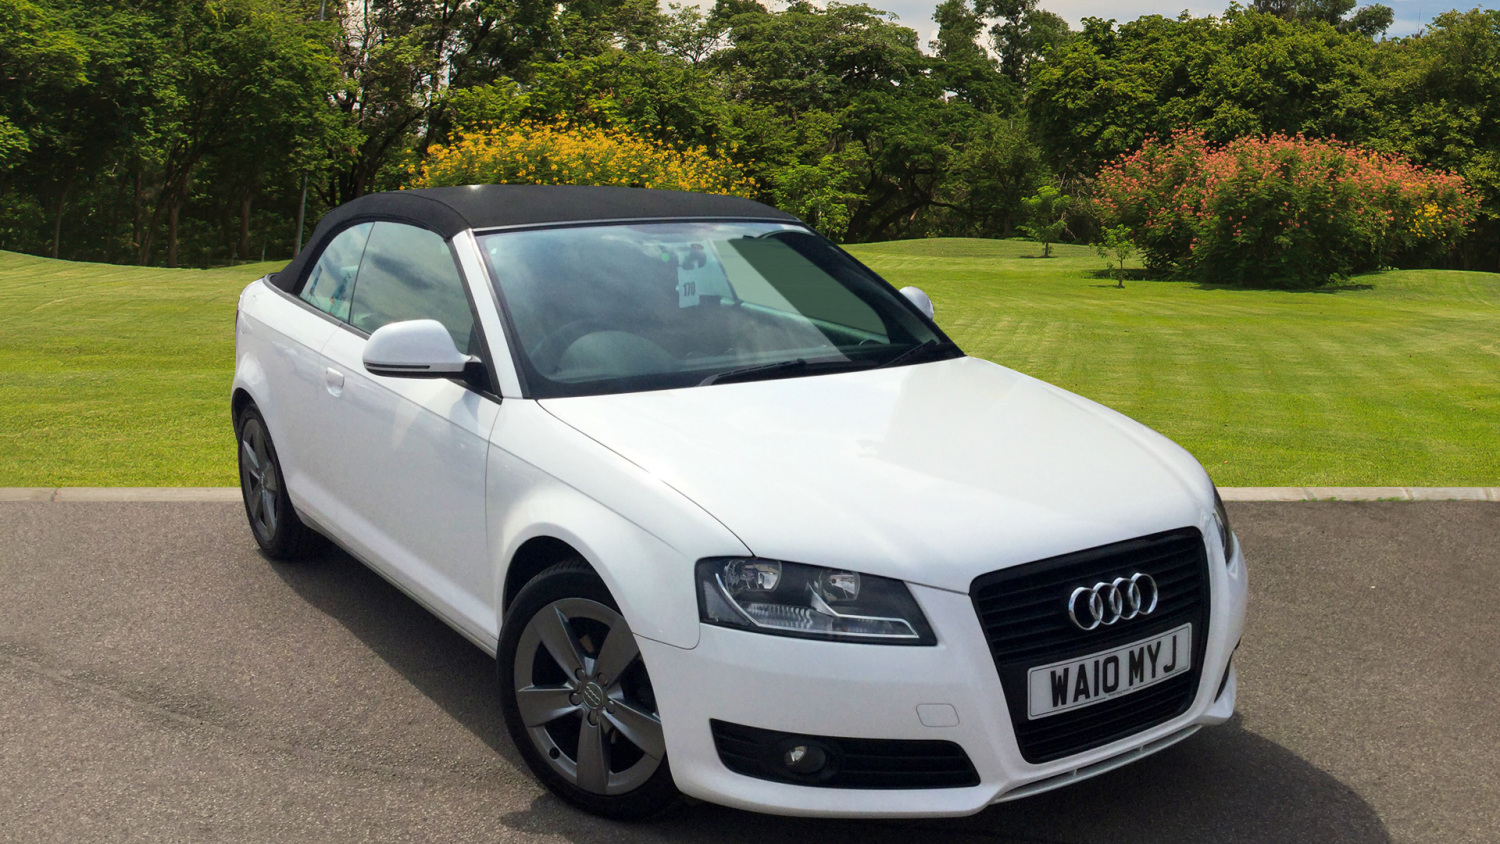 used audi a3 1 6 tdi sport 2dr diesel cabriolet for sale. Black Bedroom Furniture Sets. Home Design Ideas